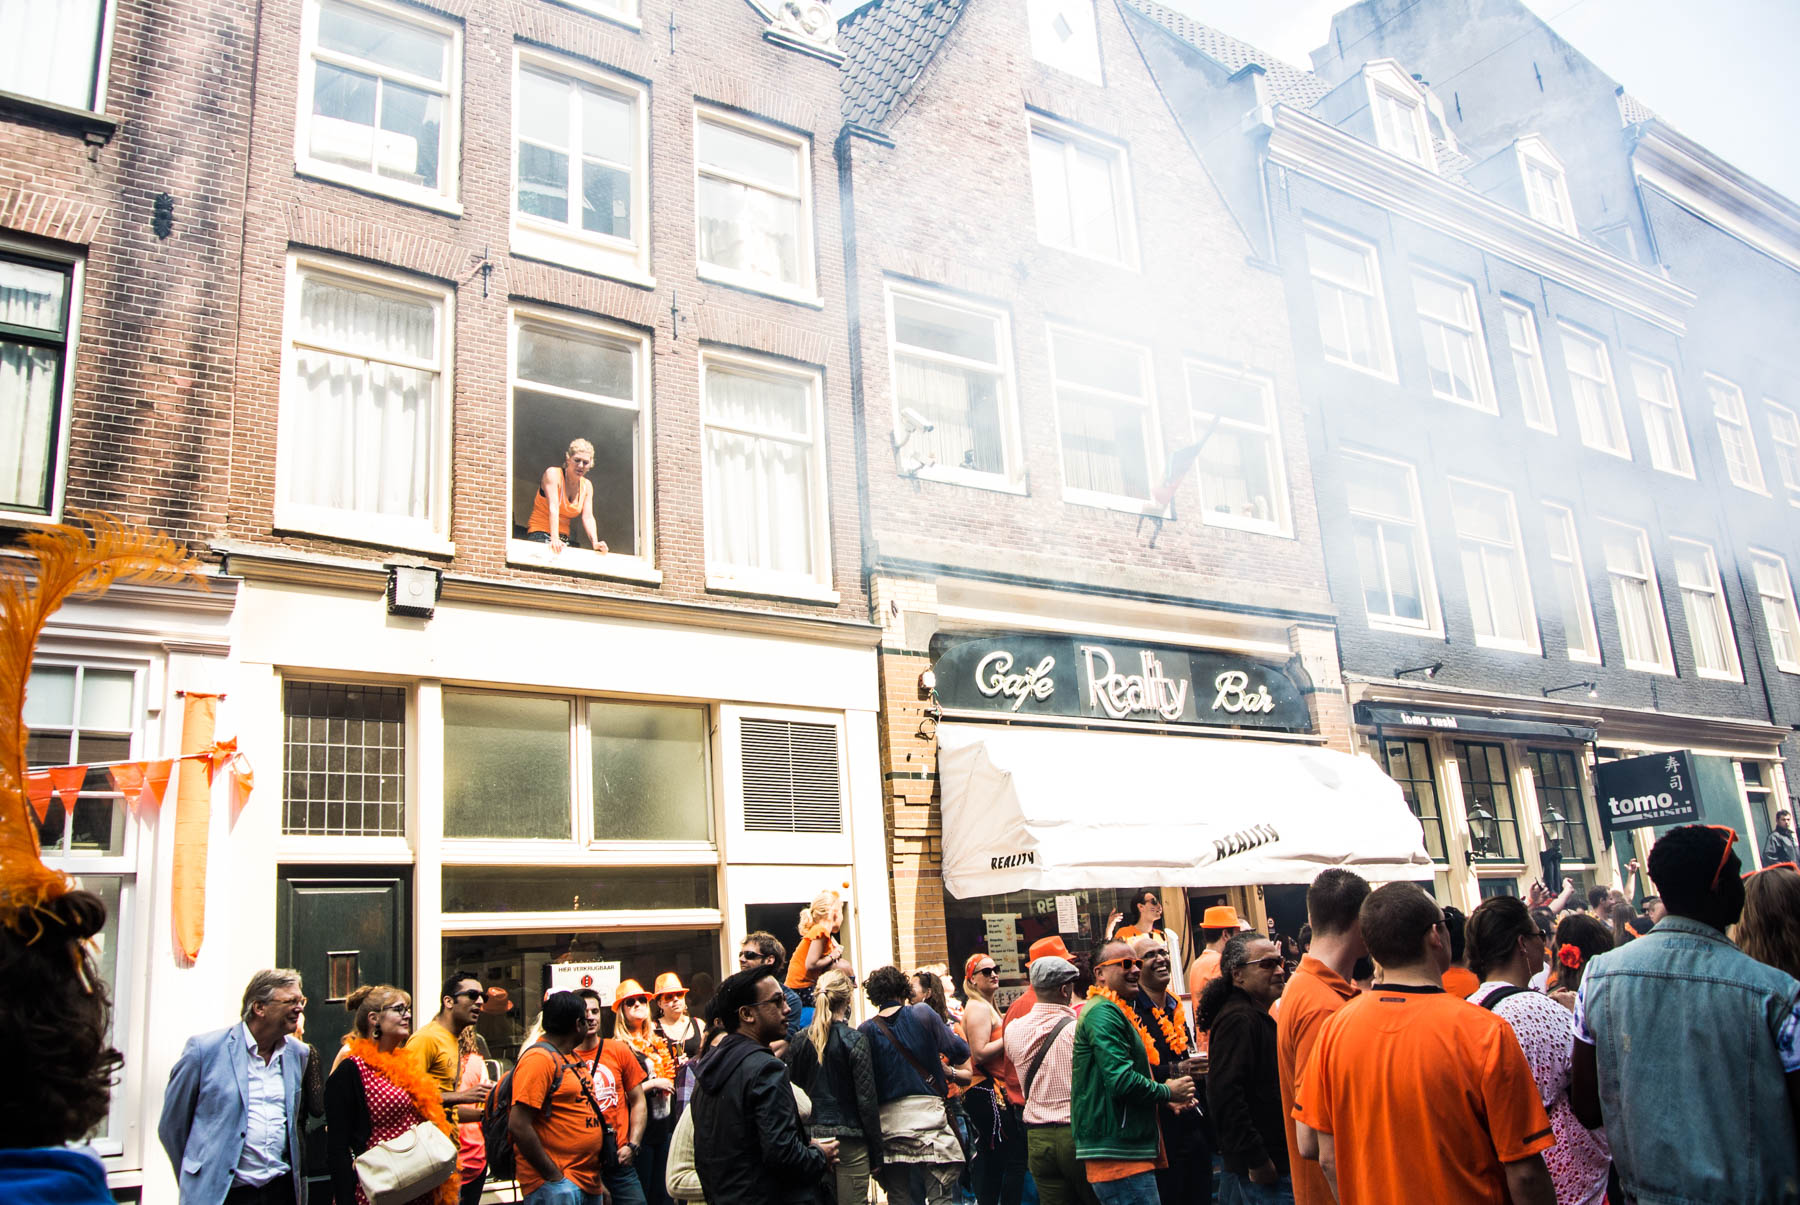 A woman watching over a party from a window during King's Day celebrations in Amsterdam.